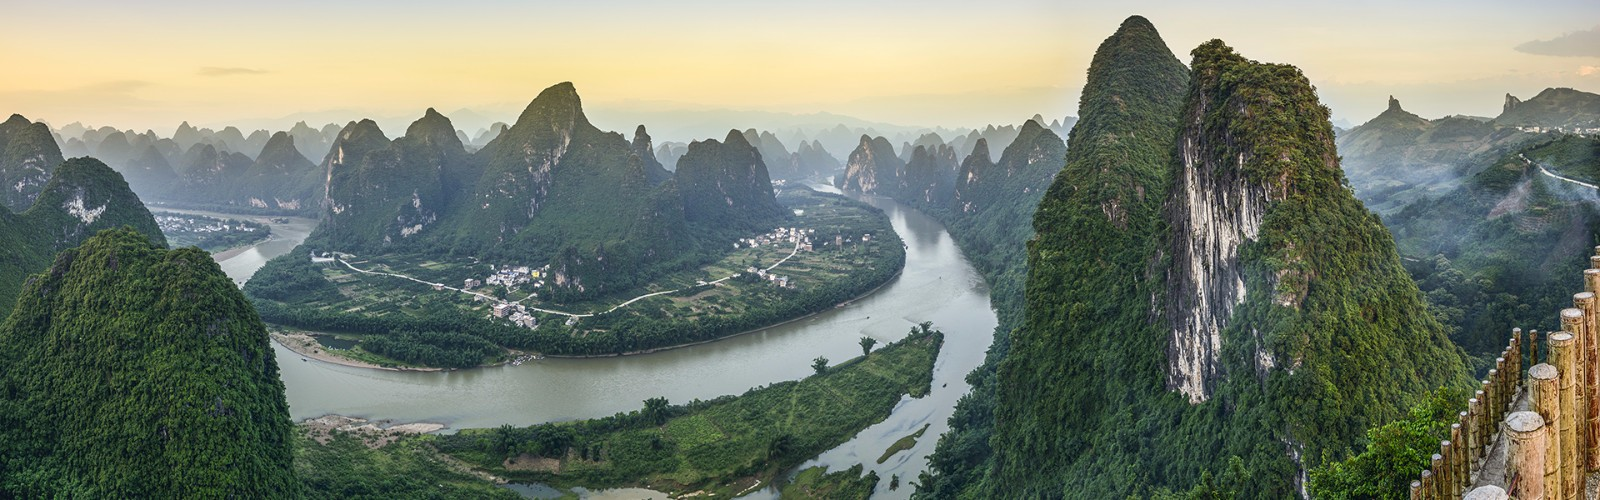 Glories of China Tour | Wendy Wu Tours